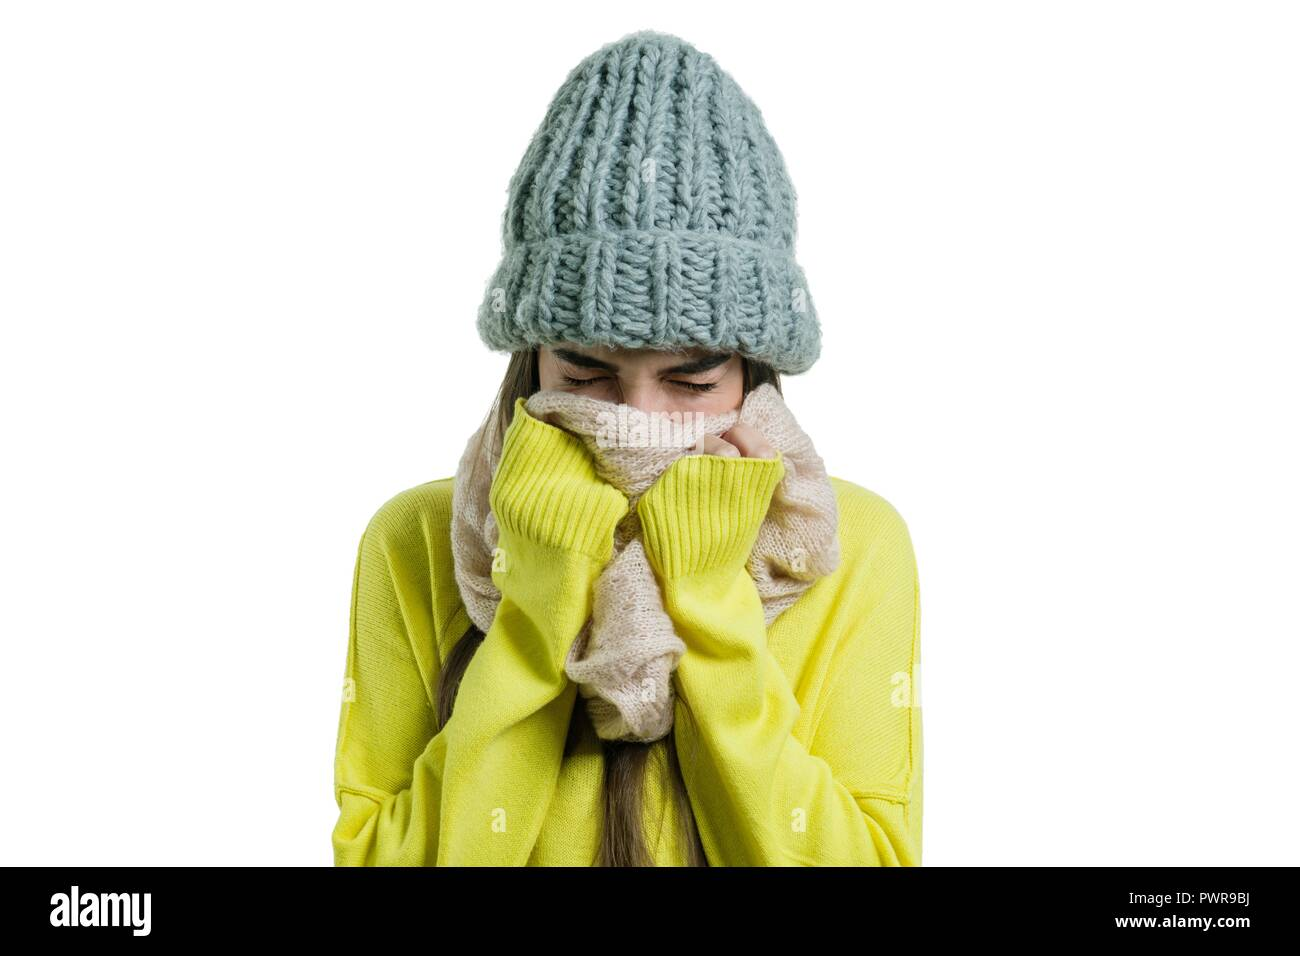 Woman caught a cold, in a knitted cap scarf, sneezes, covered her mouth with her hands. - Stock Image